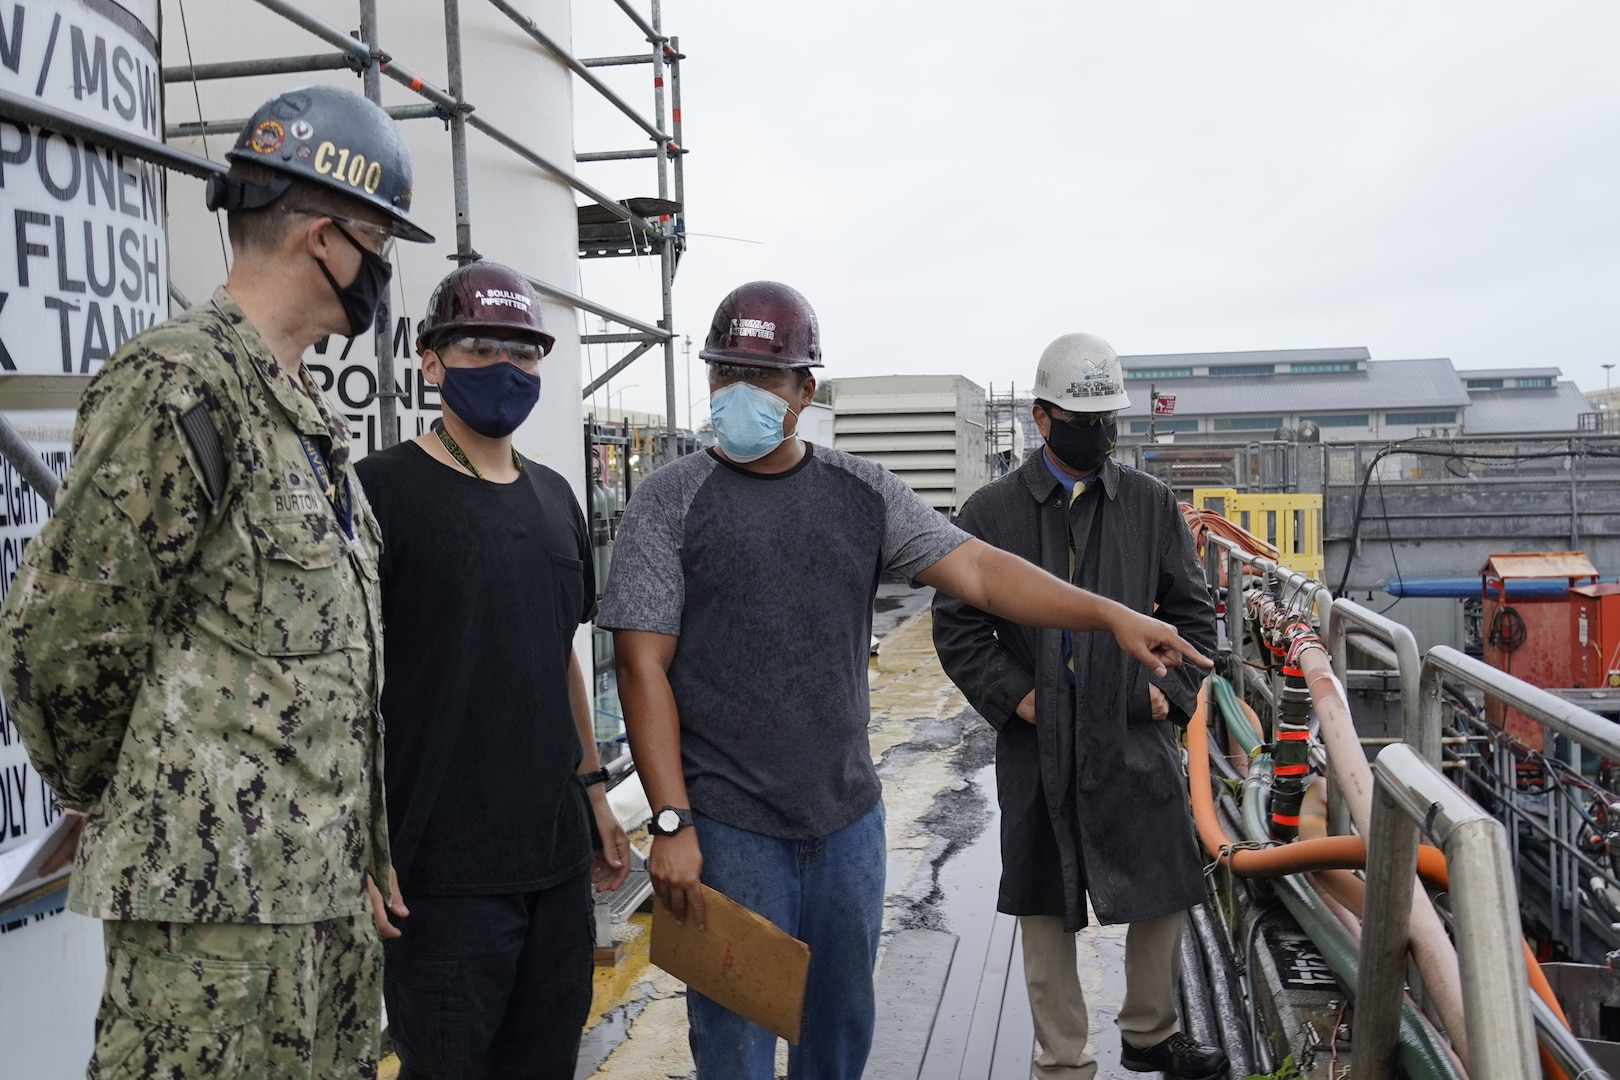 Pipefitter Apprentices Alex Soulliere and Francis Dumlao provide an overview of the improvements made to USS Mississippi's (SSN-782) Vertical Launch System (VLS) Missile Tube Air Pressure Vent (APV) pipe drying process.